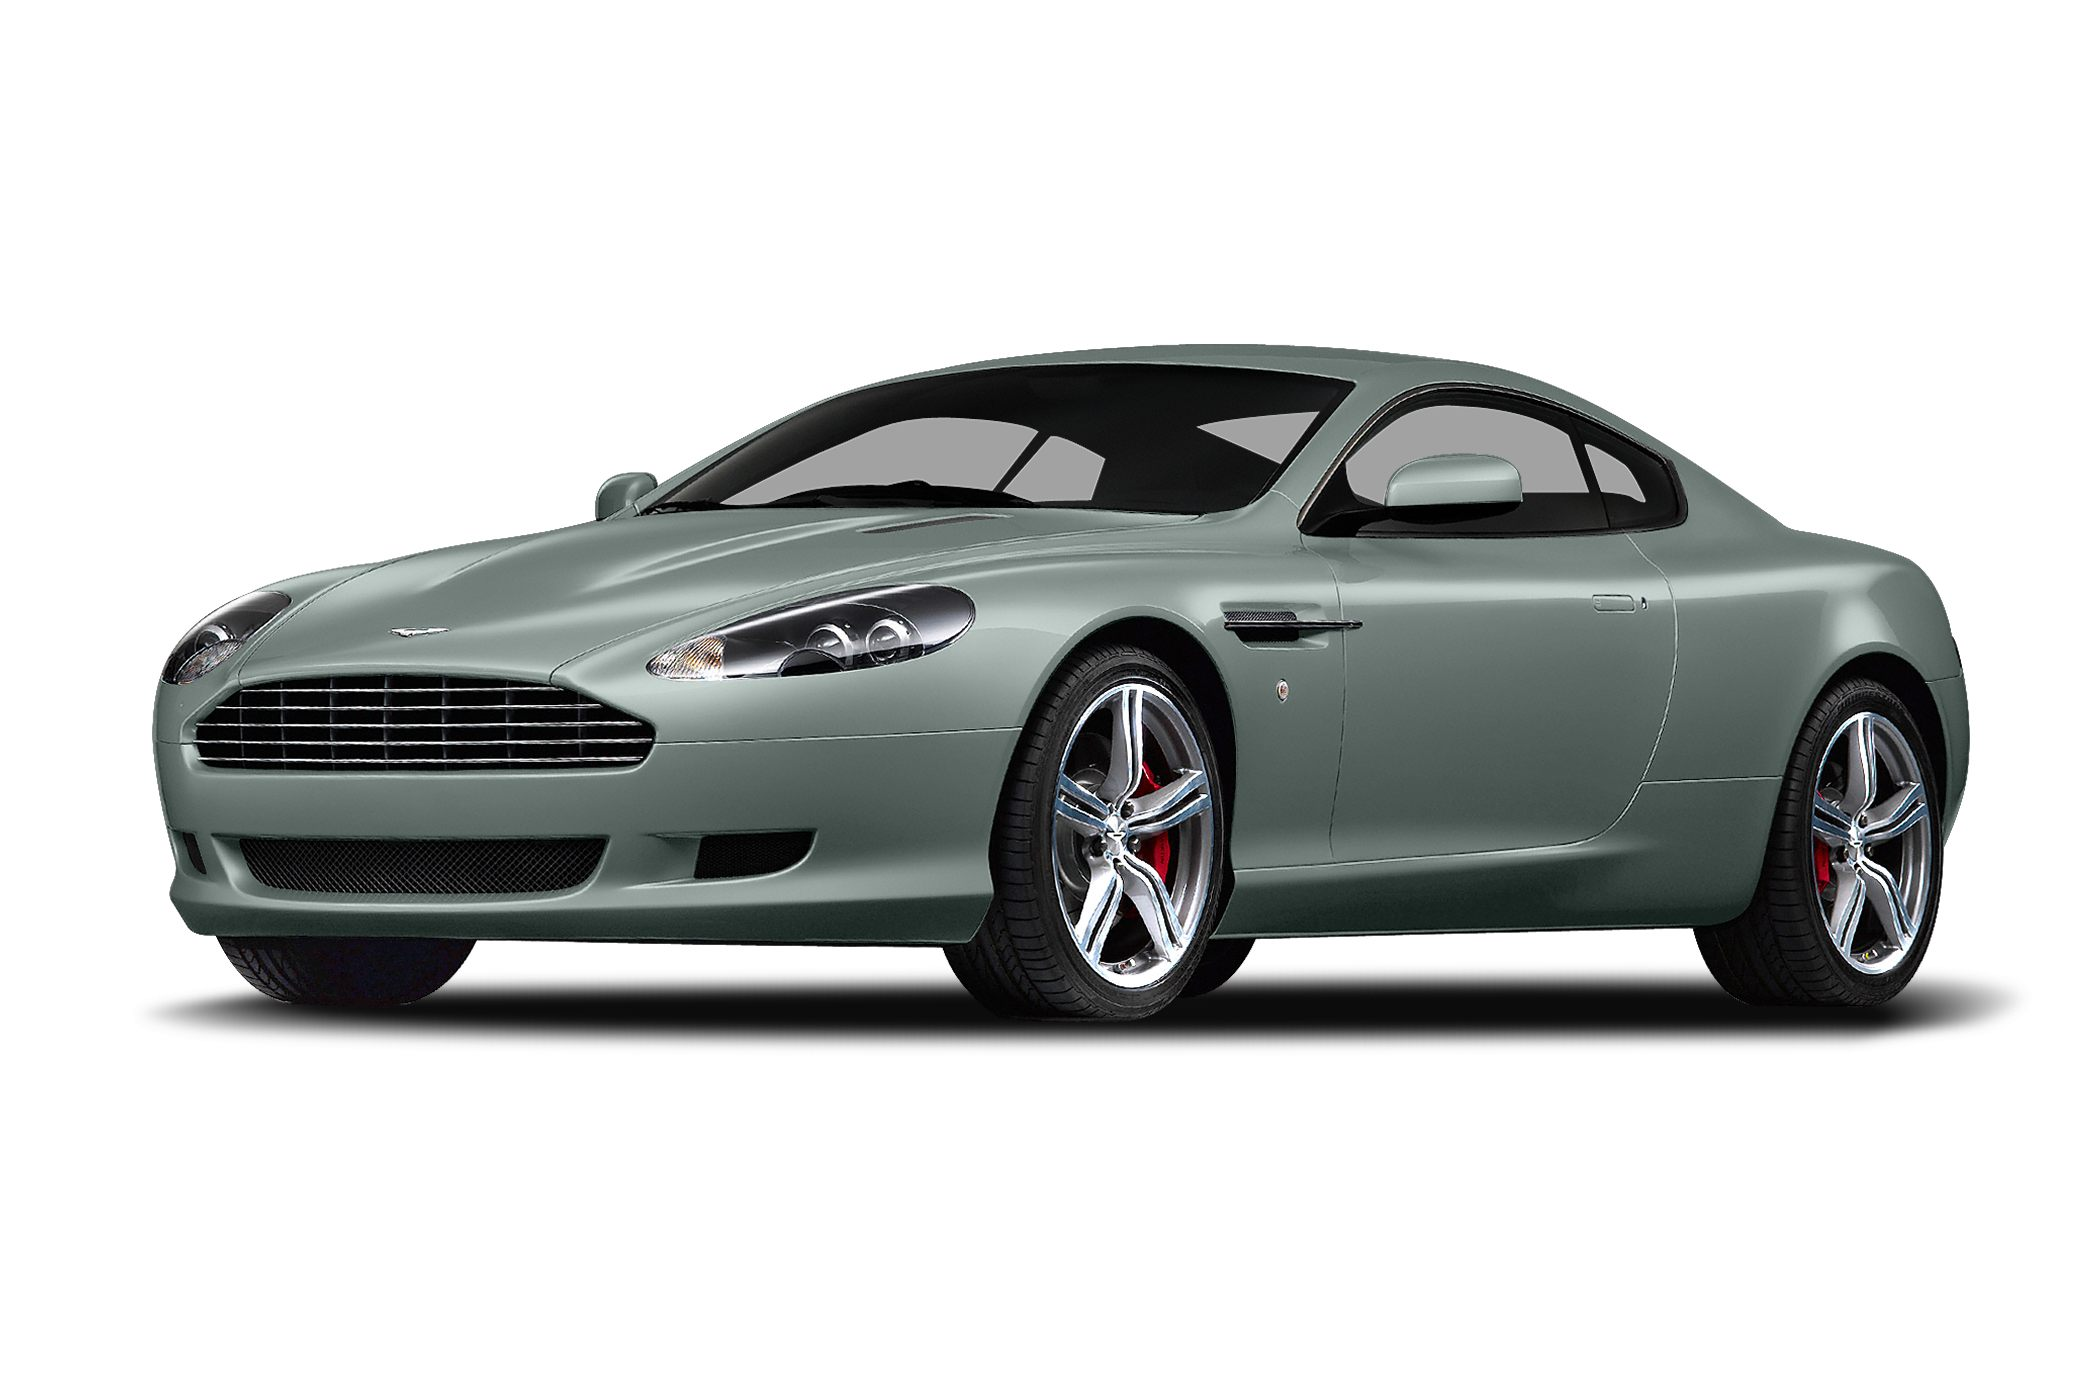 2009 Aston Martin DB9 Base Coupe Specs and Prices